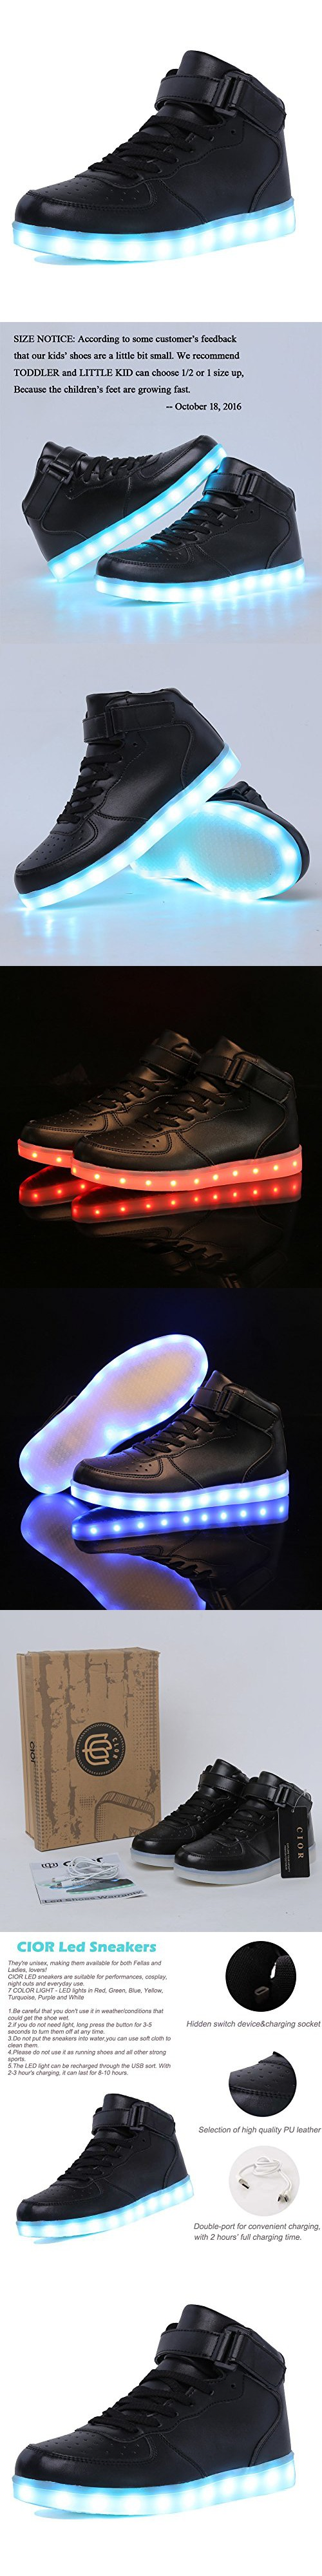 CIOR Kids Boy and Girl s High Top Led Sneakers Light Up Flashing